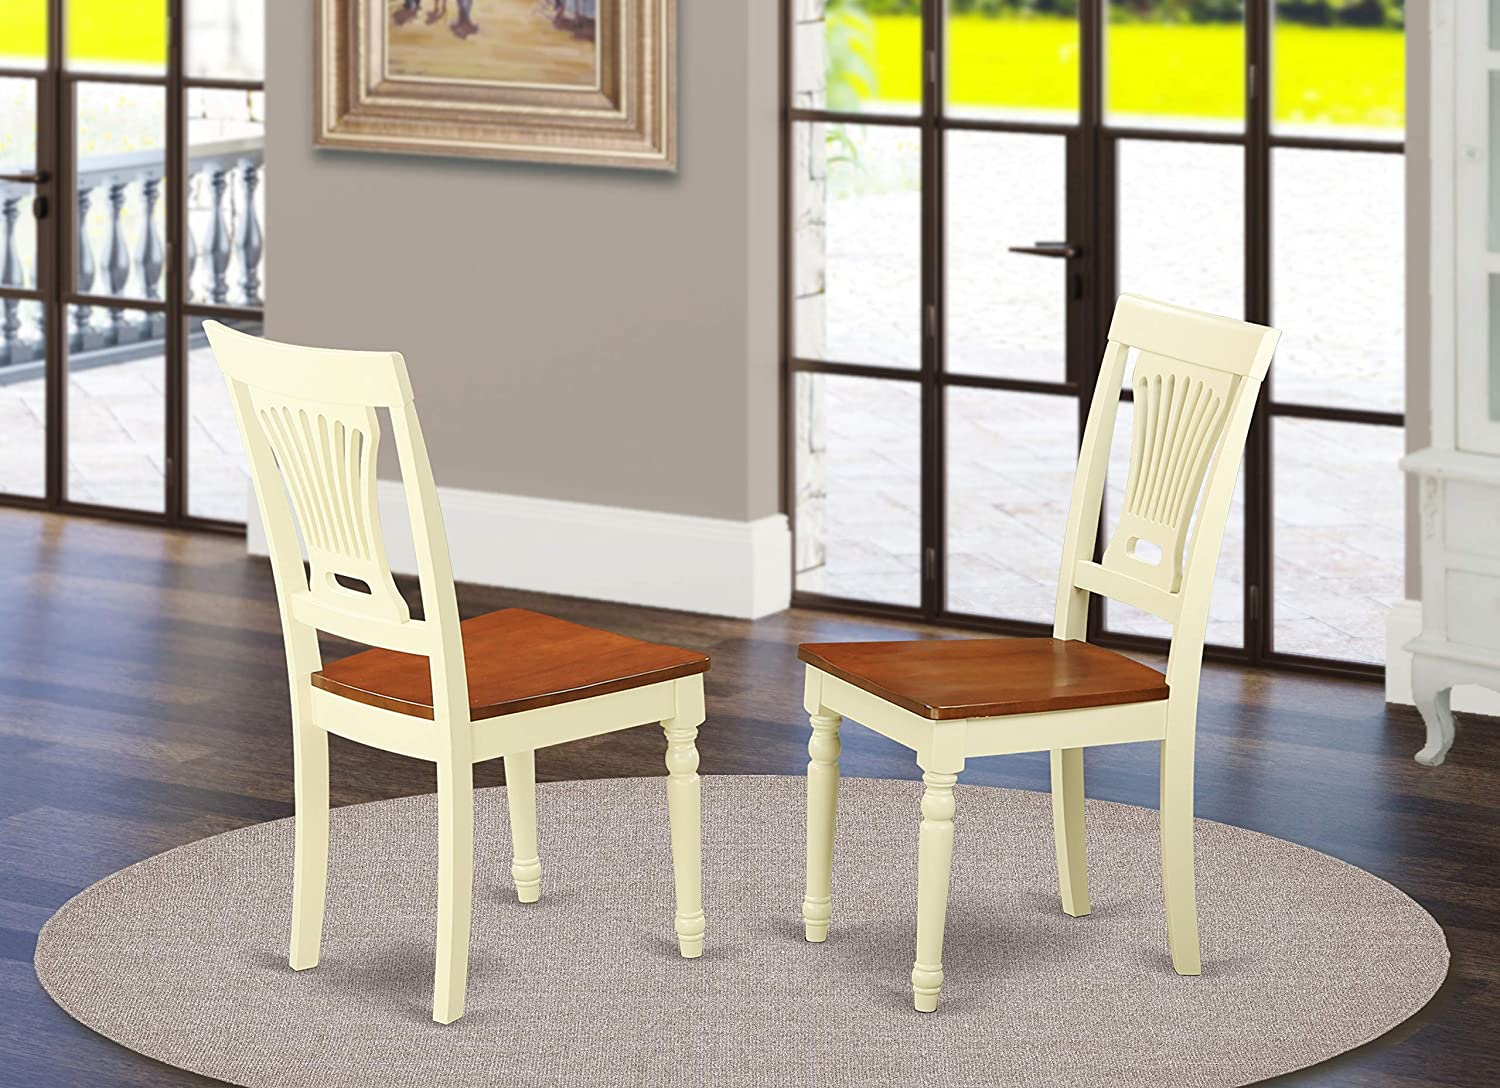 Plainville Kitchen dining Chair Wood Seat – Buttermilk and Cherry Finish